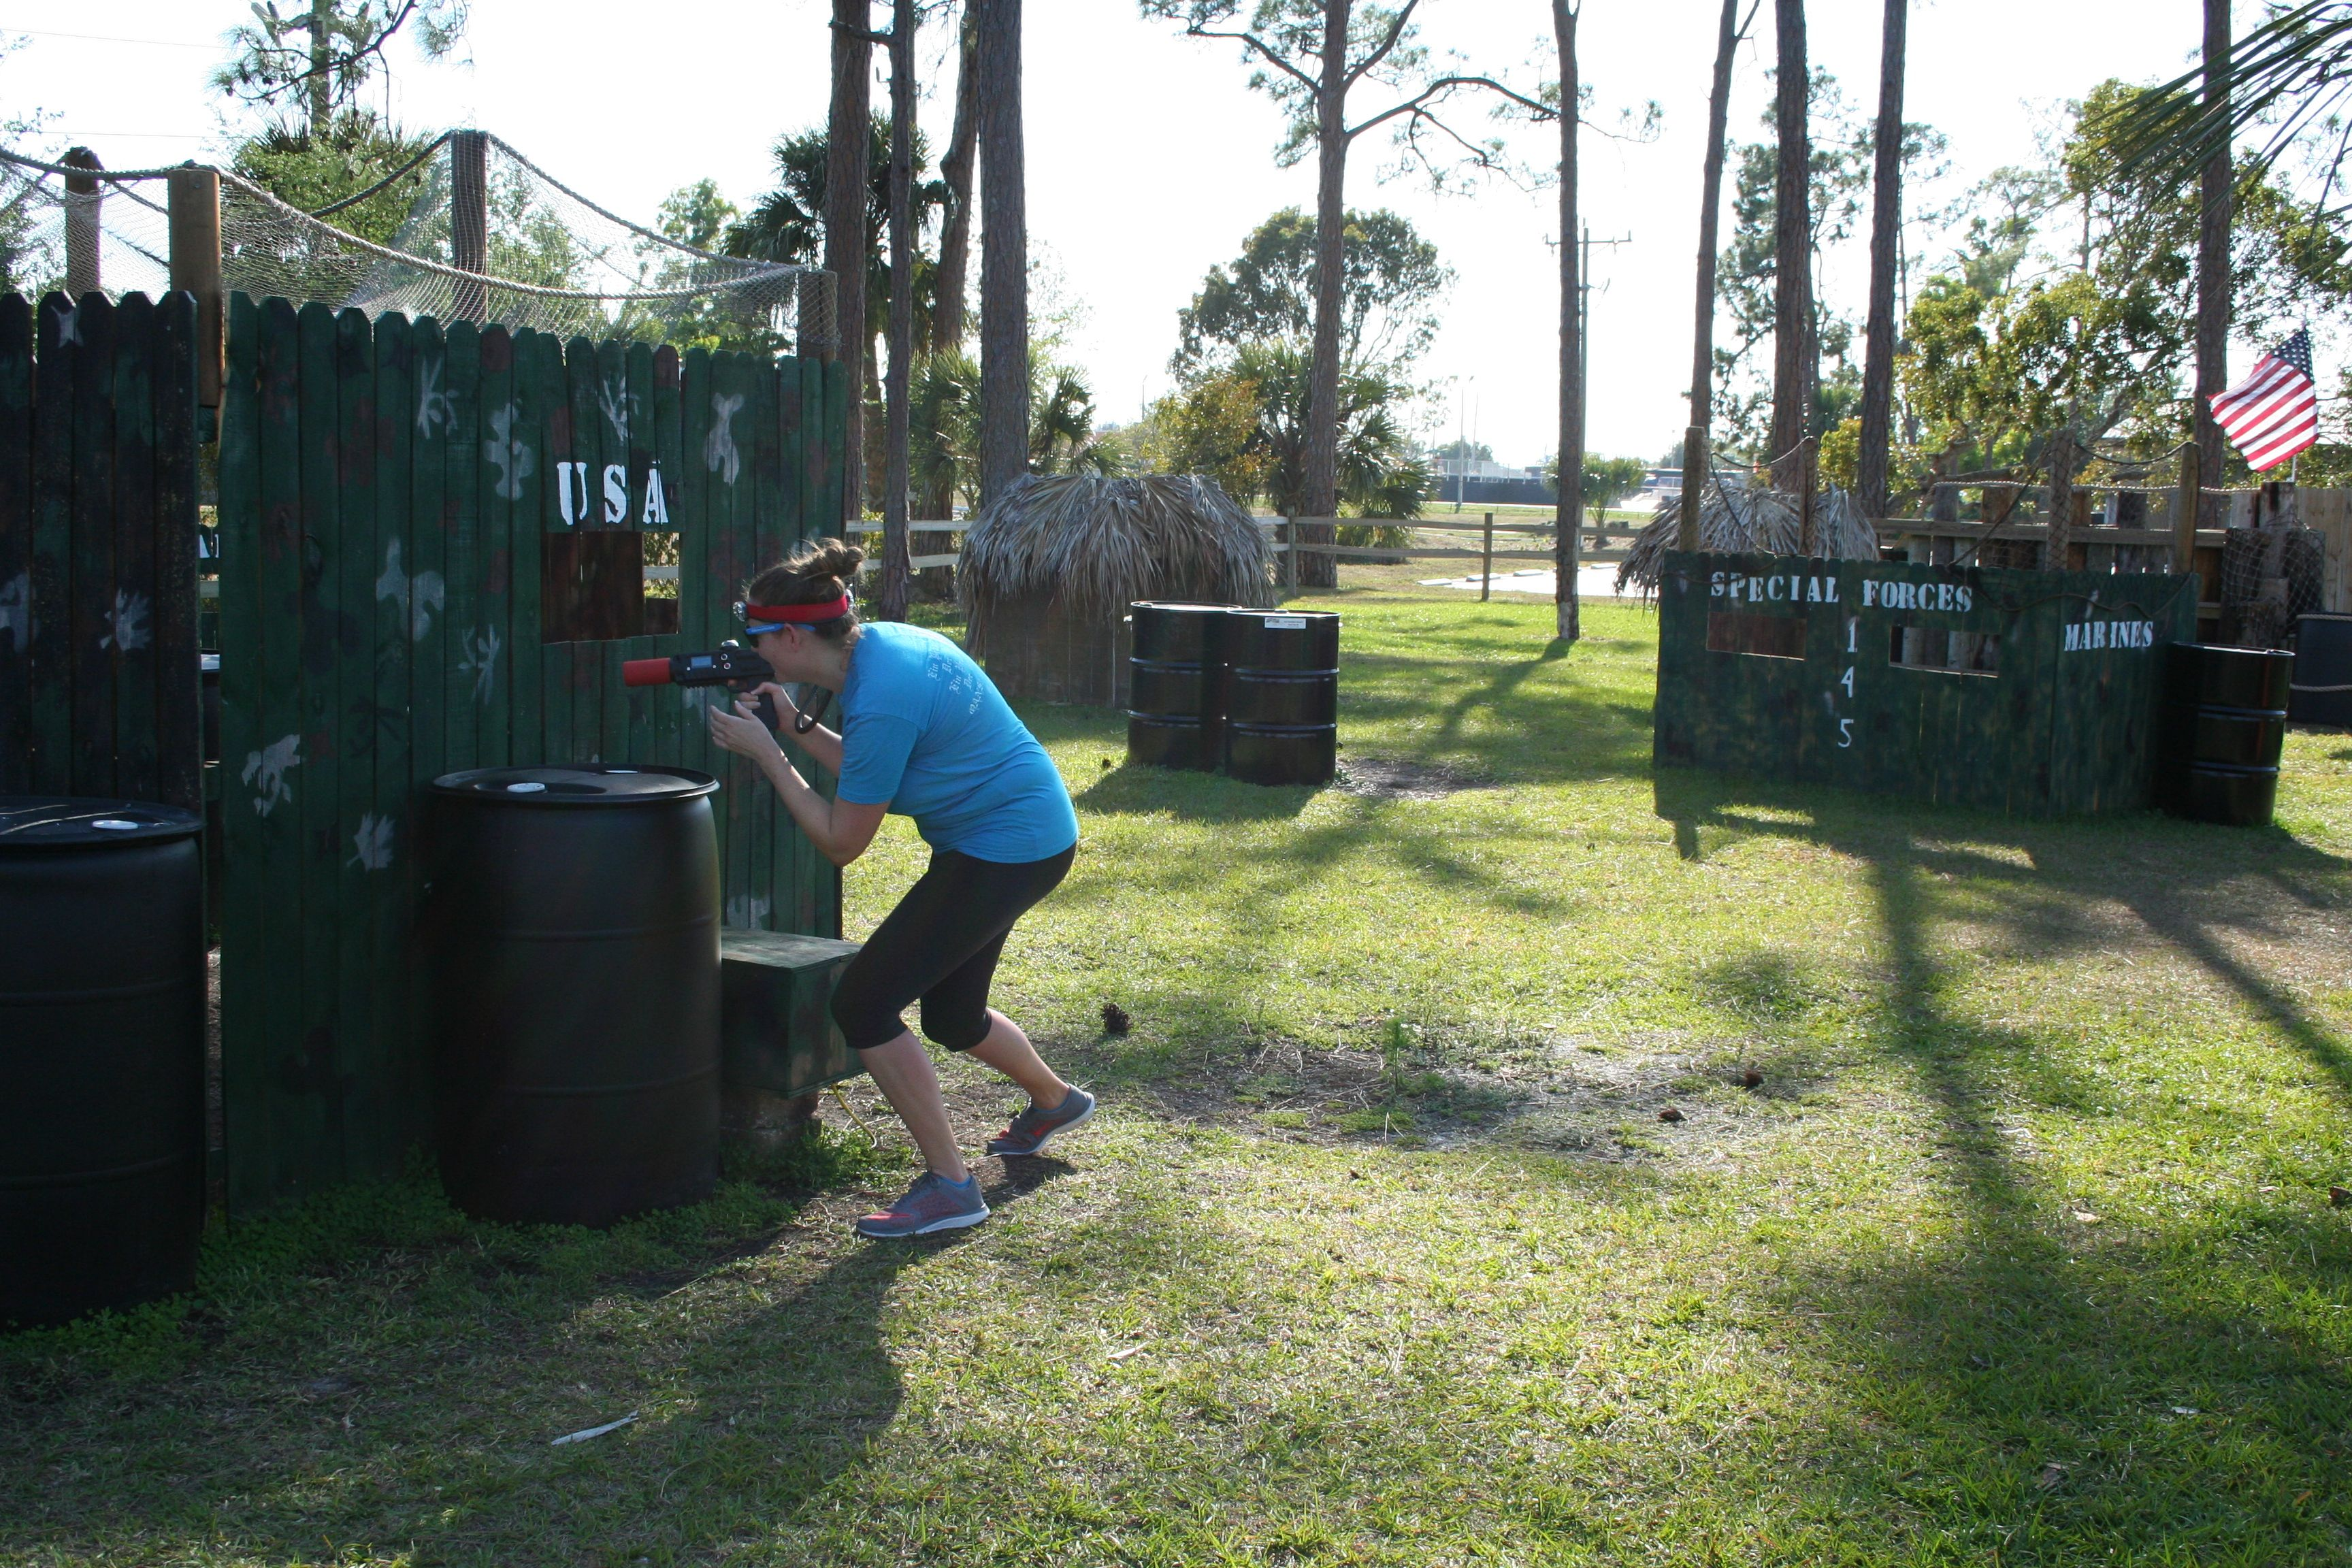 Extreme Outdoor Laser Tag At Tropical Breeze Fun Park In Cape Coral Fl Fort Myers Corporate Events Fun